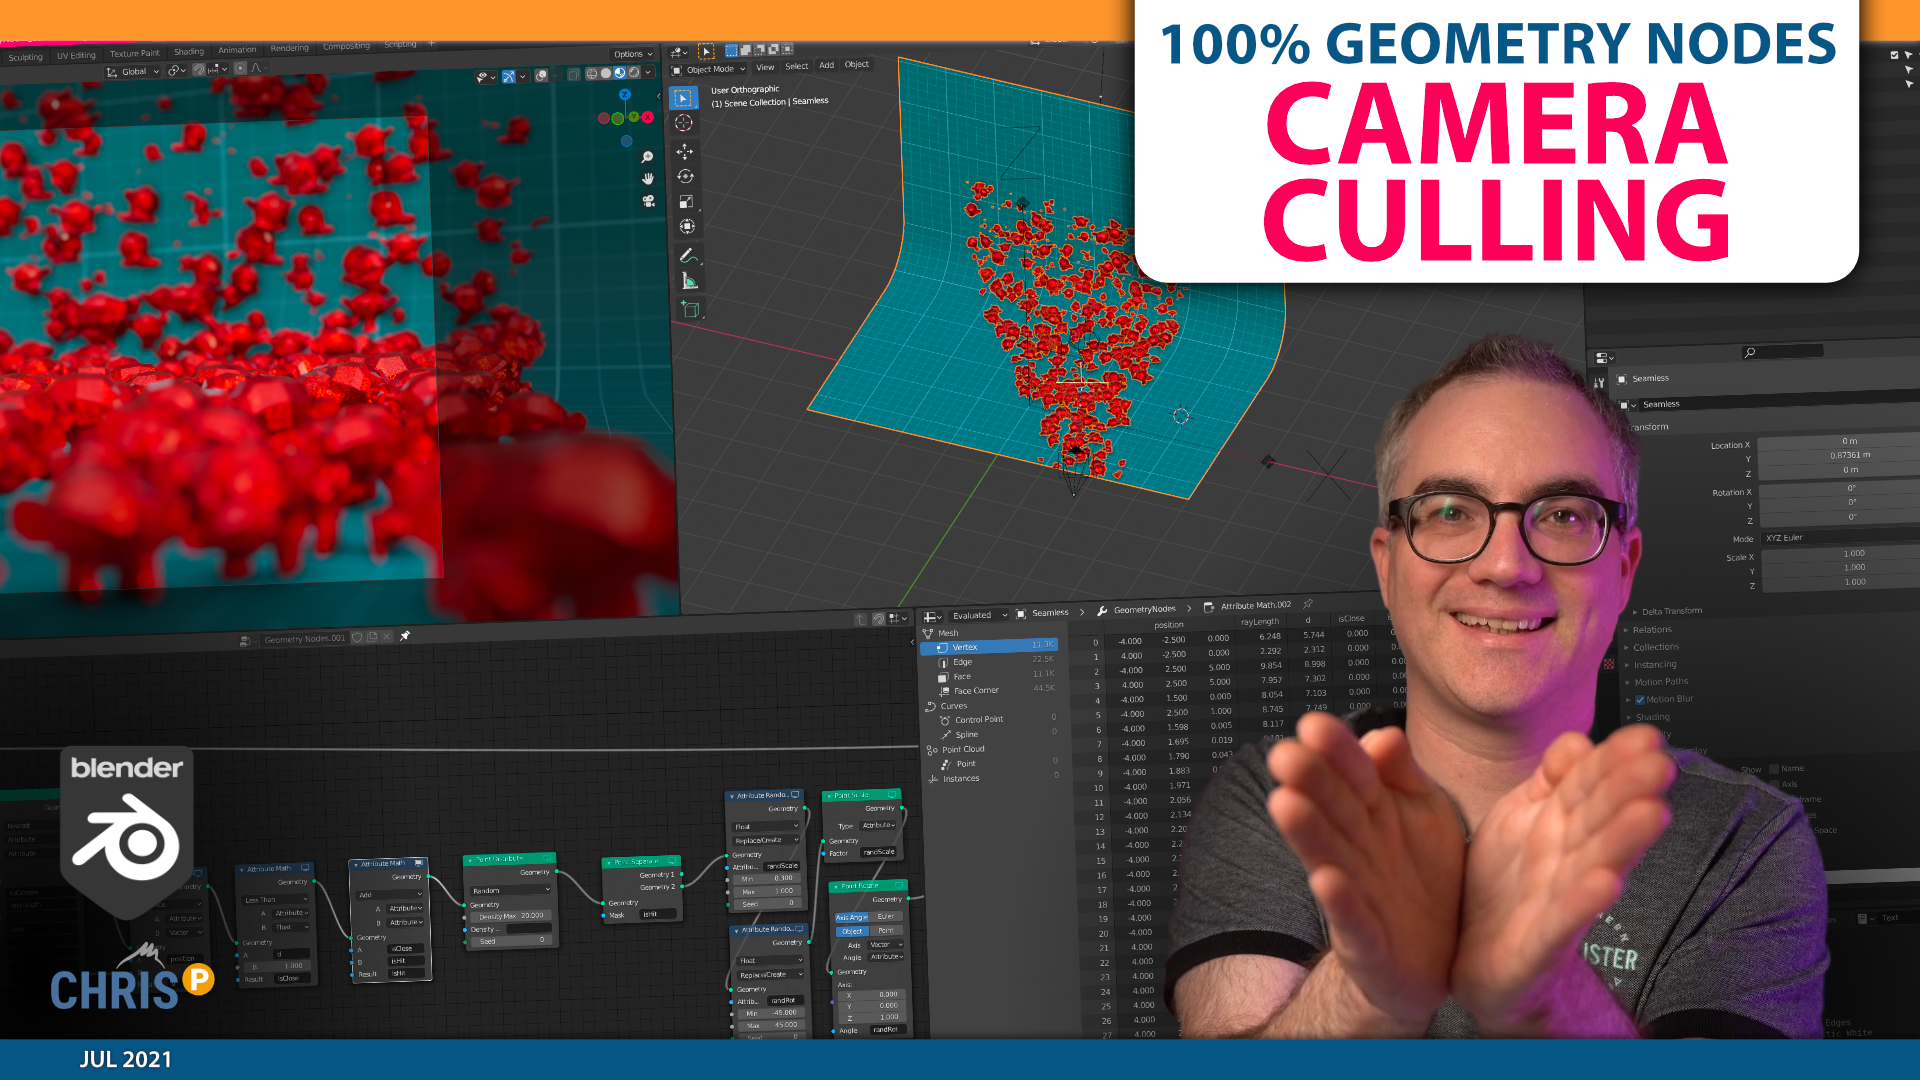 Camera Culling with Geometry Nodes